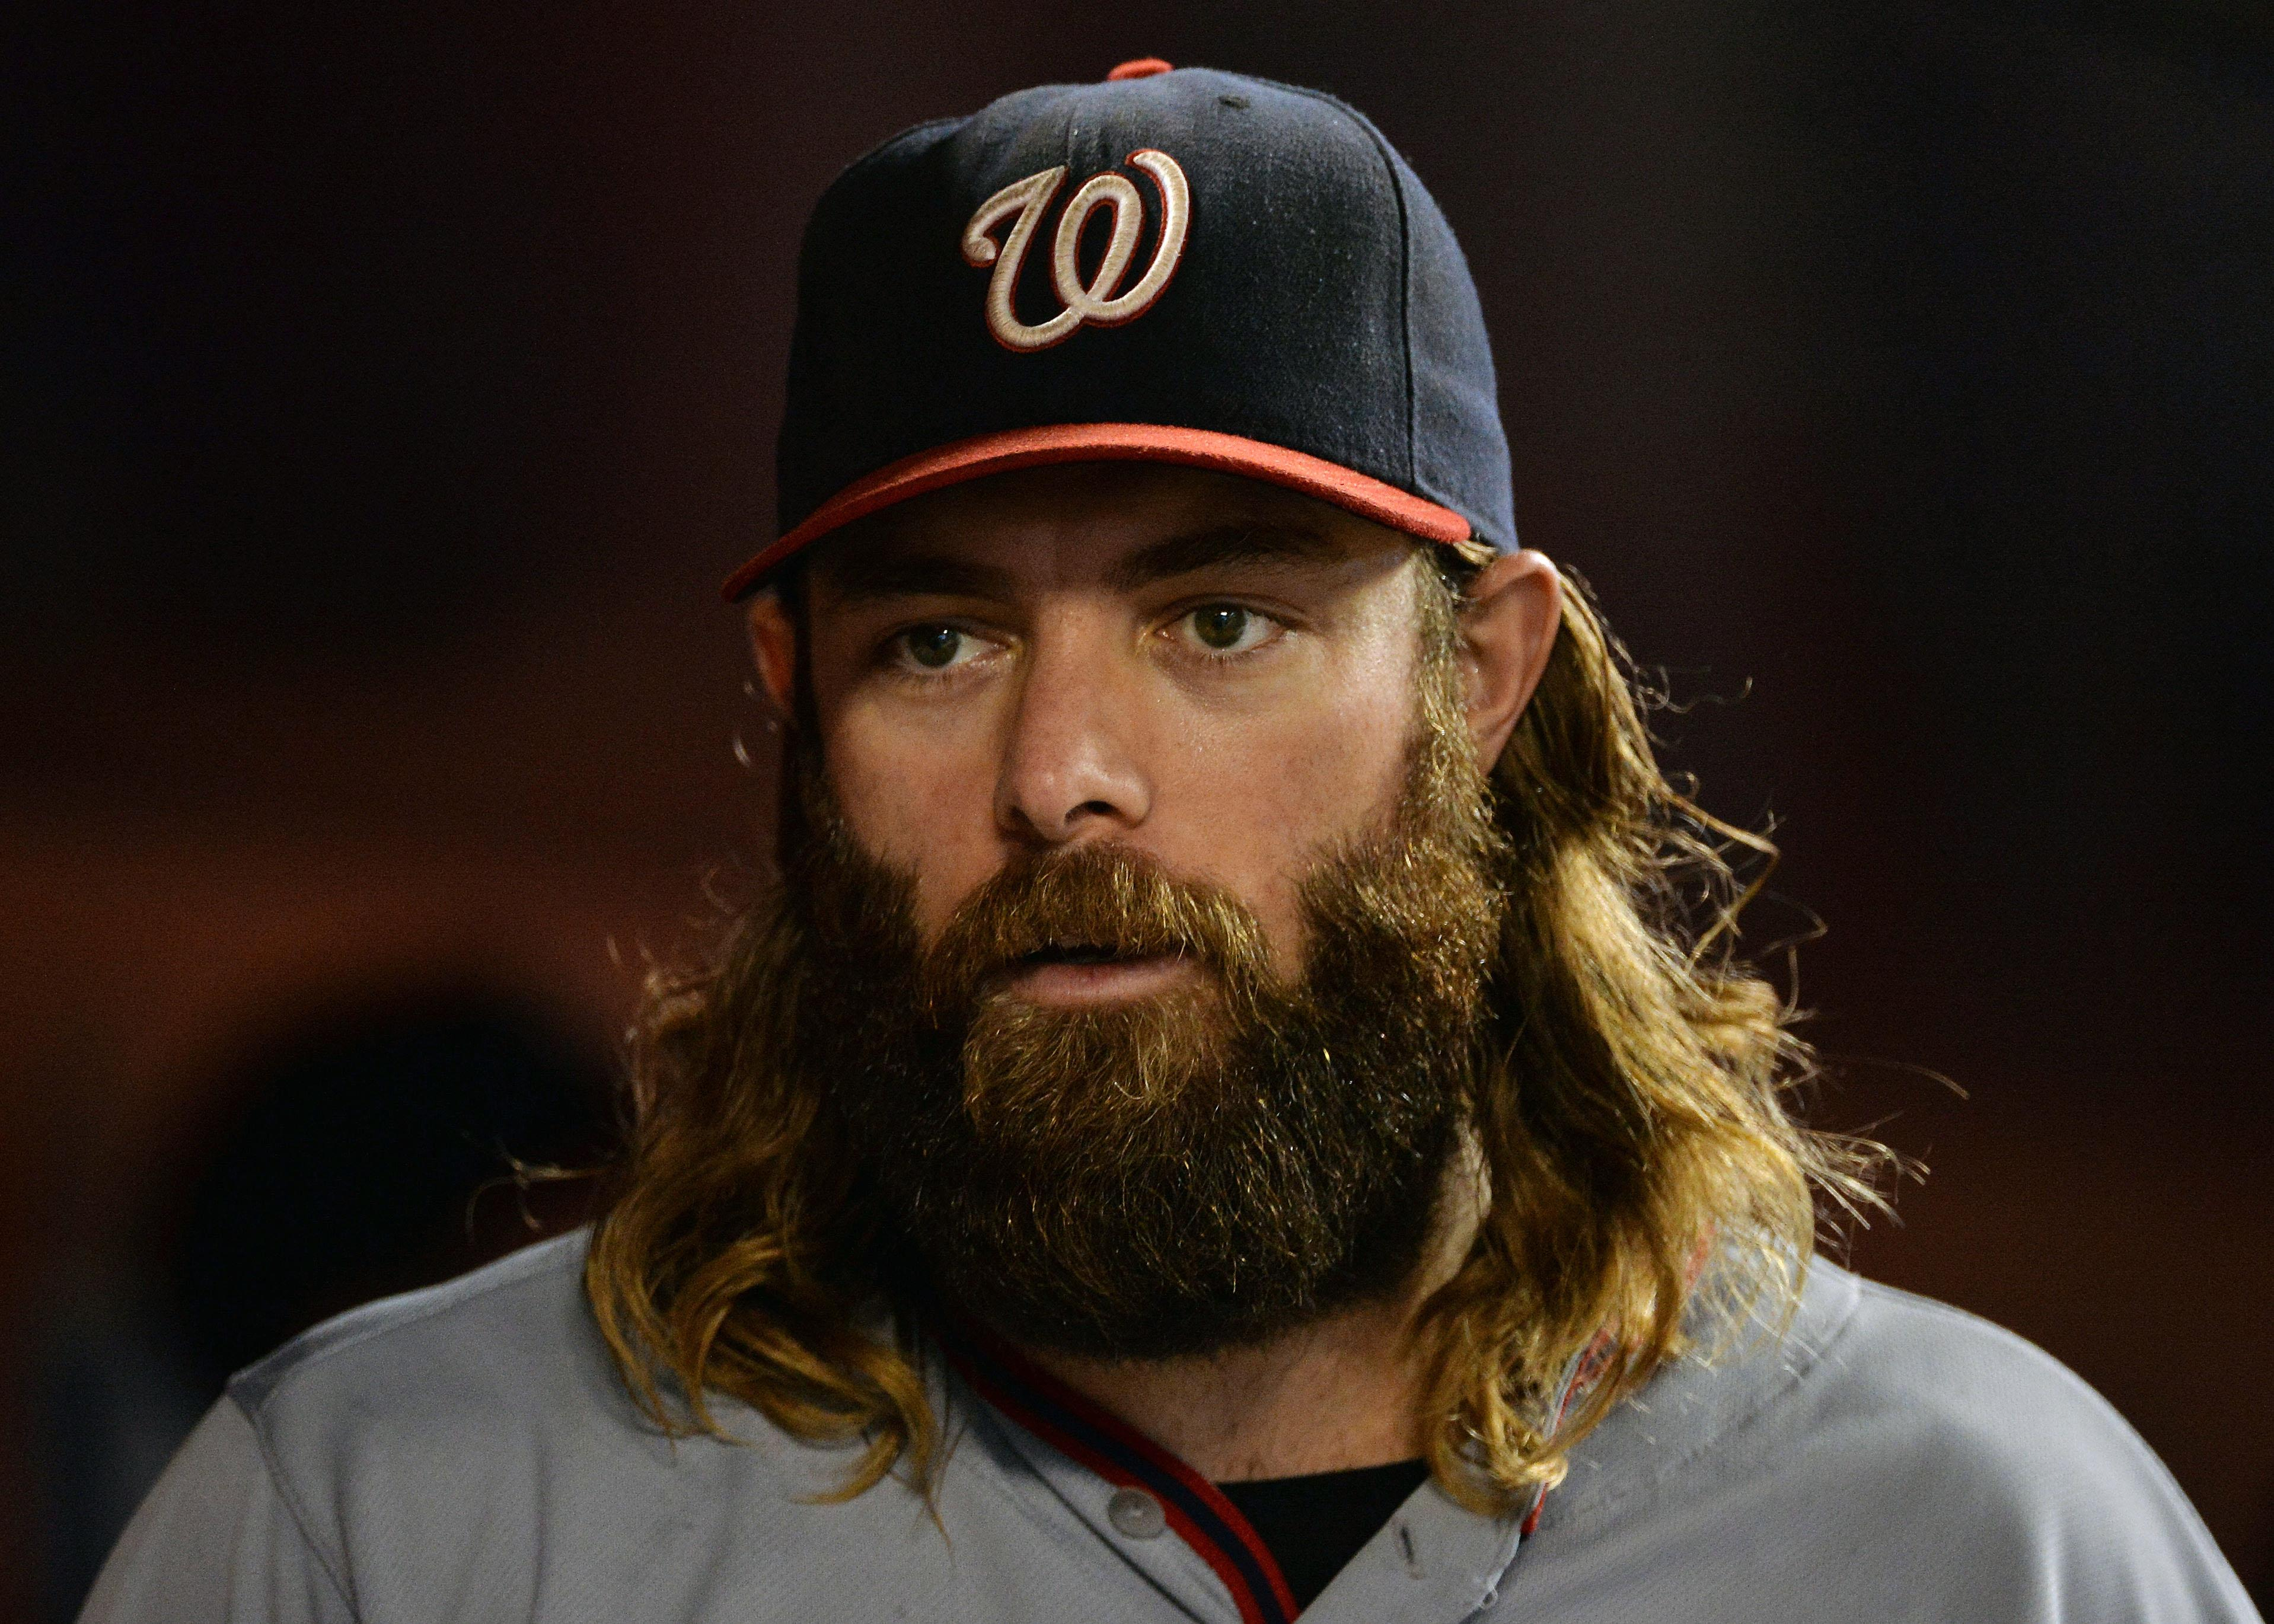 Jayson Werth will serve five days in jail, but only on weekends